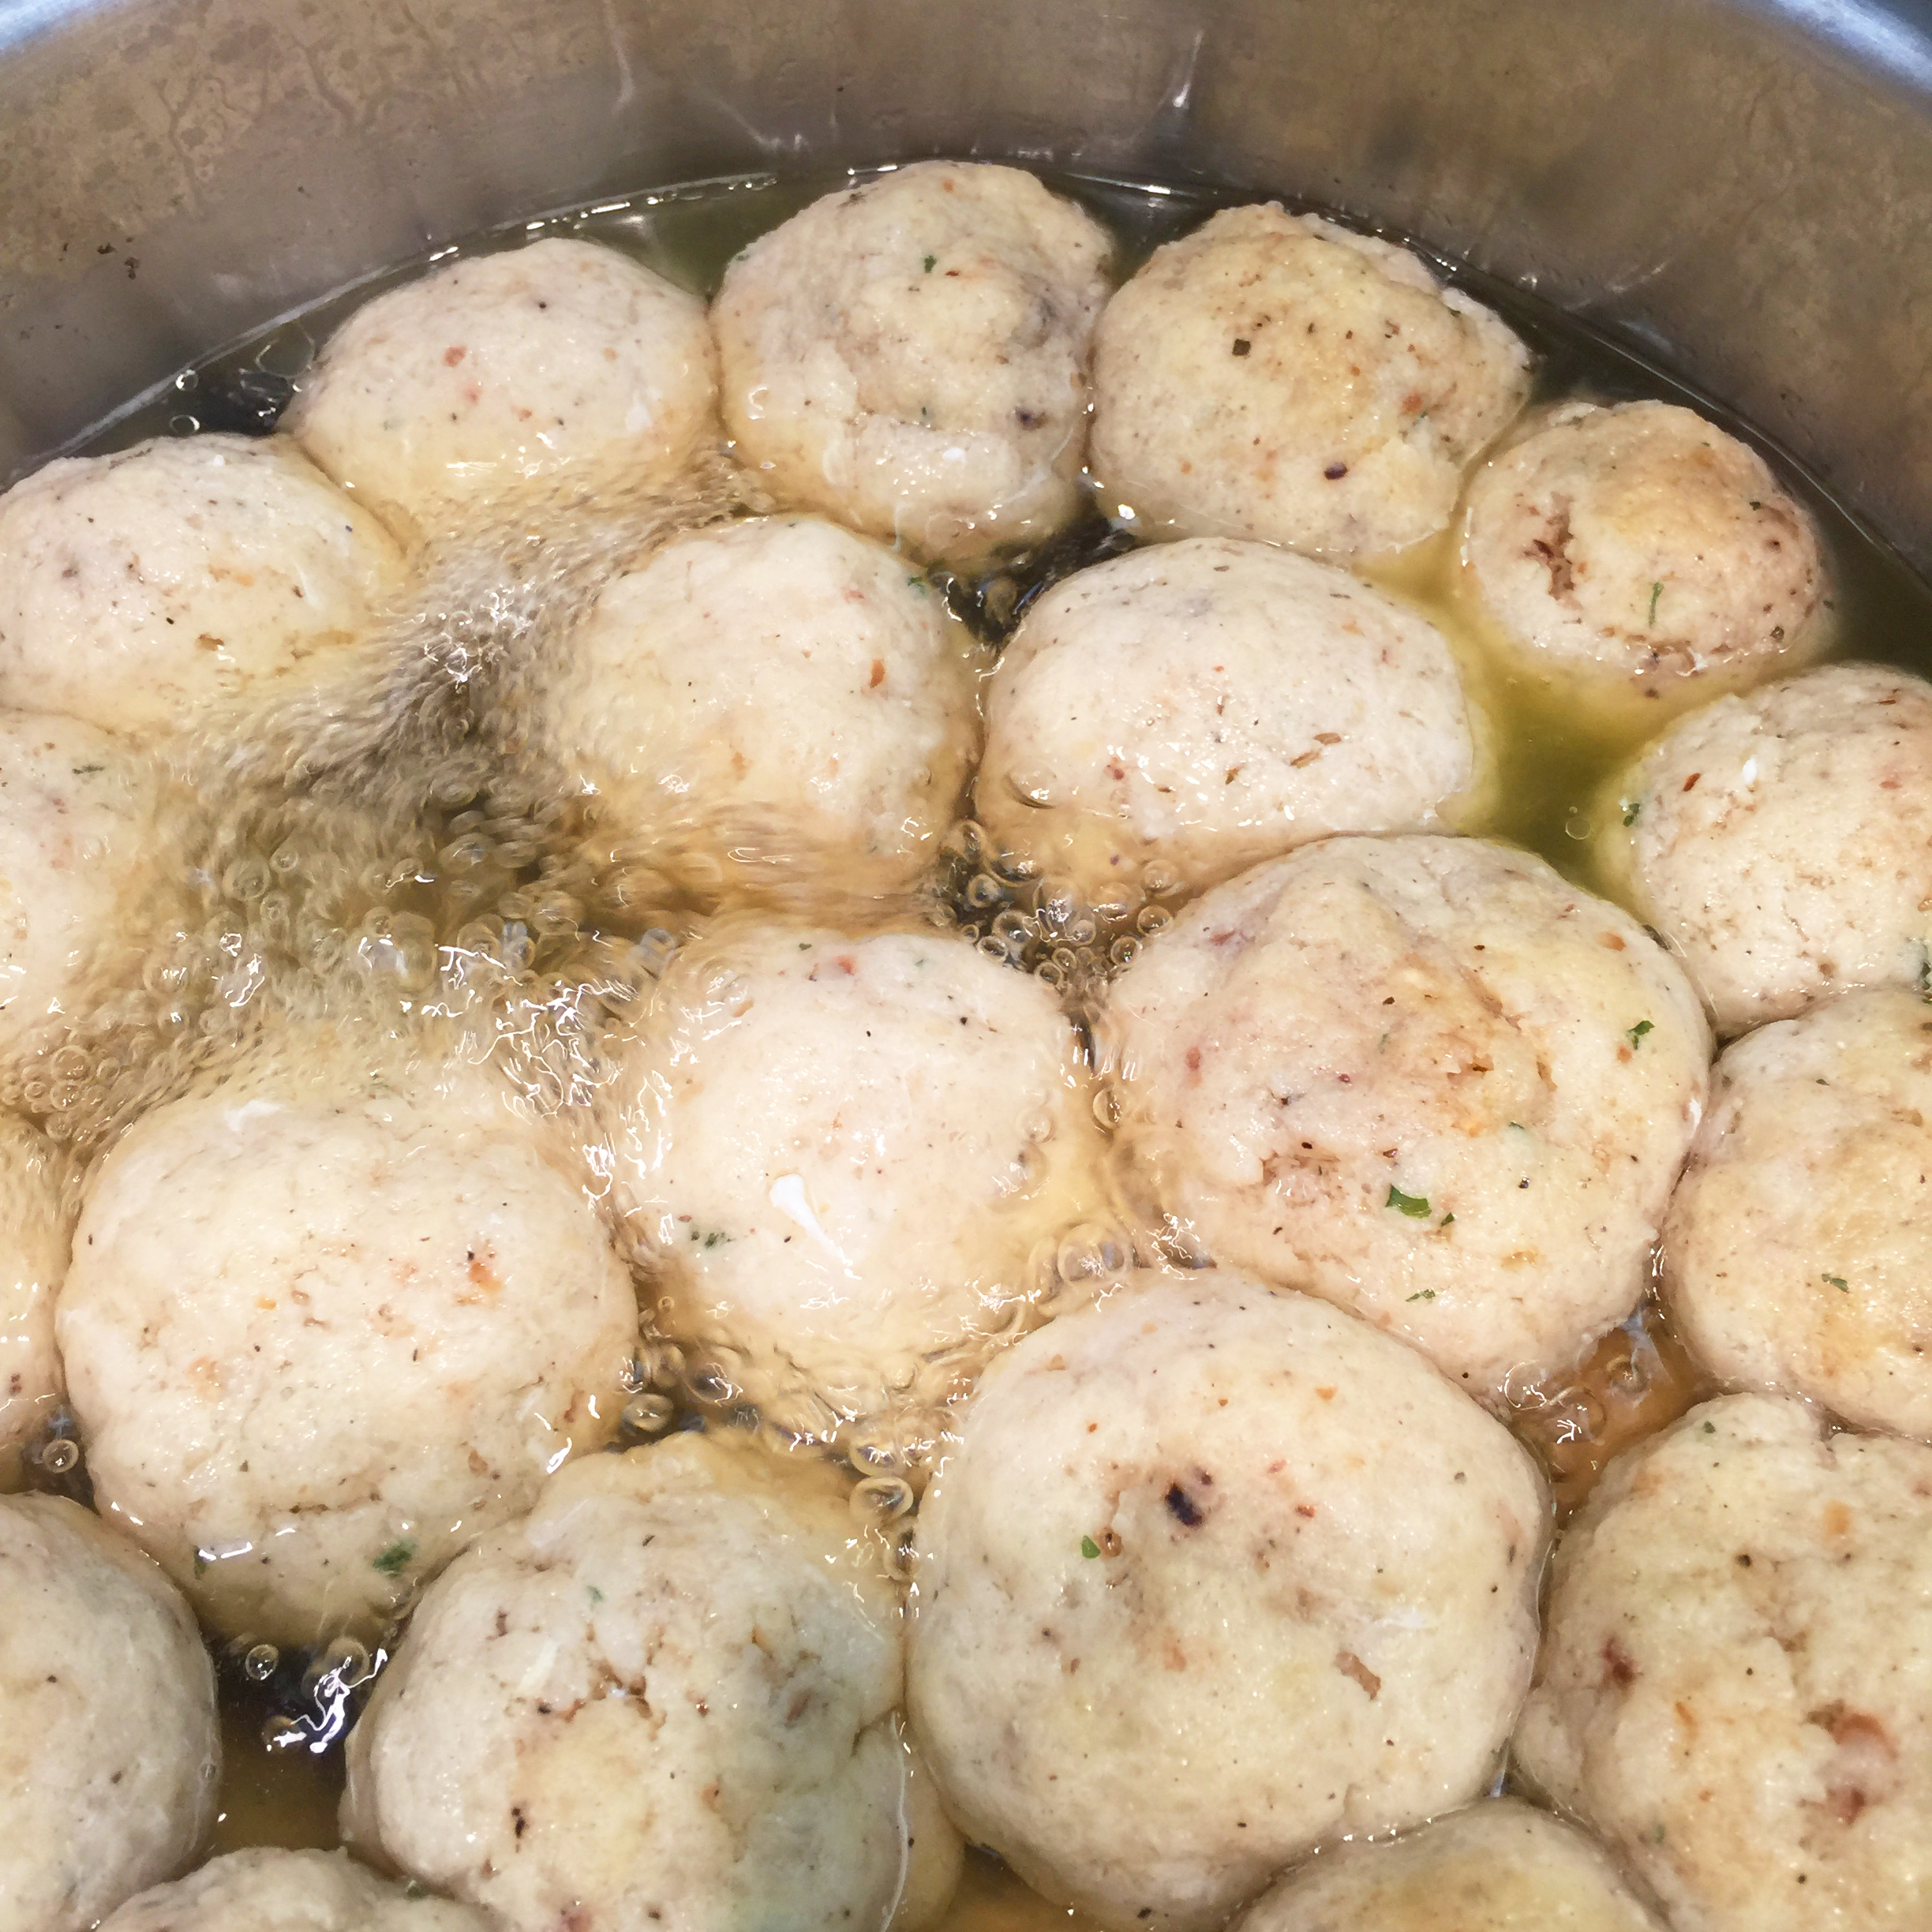 Tastes of Passover: Rabbi G's Matzah Ball